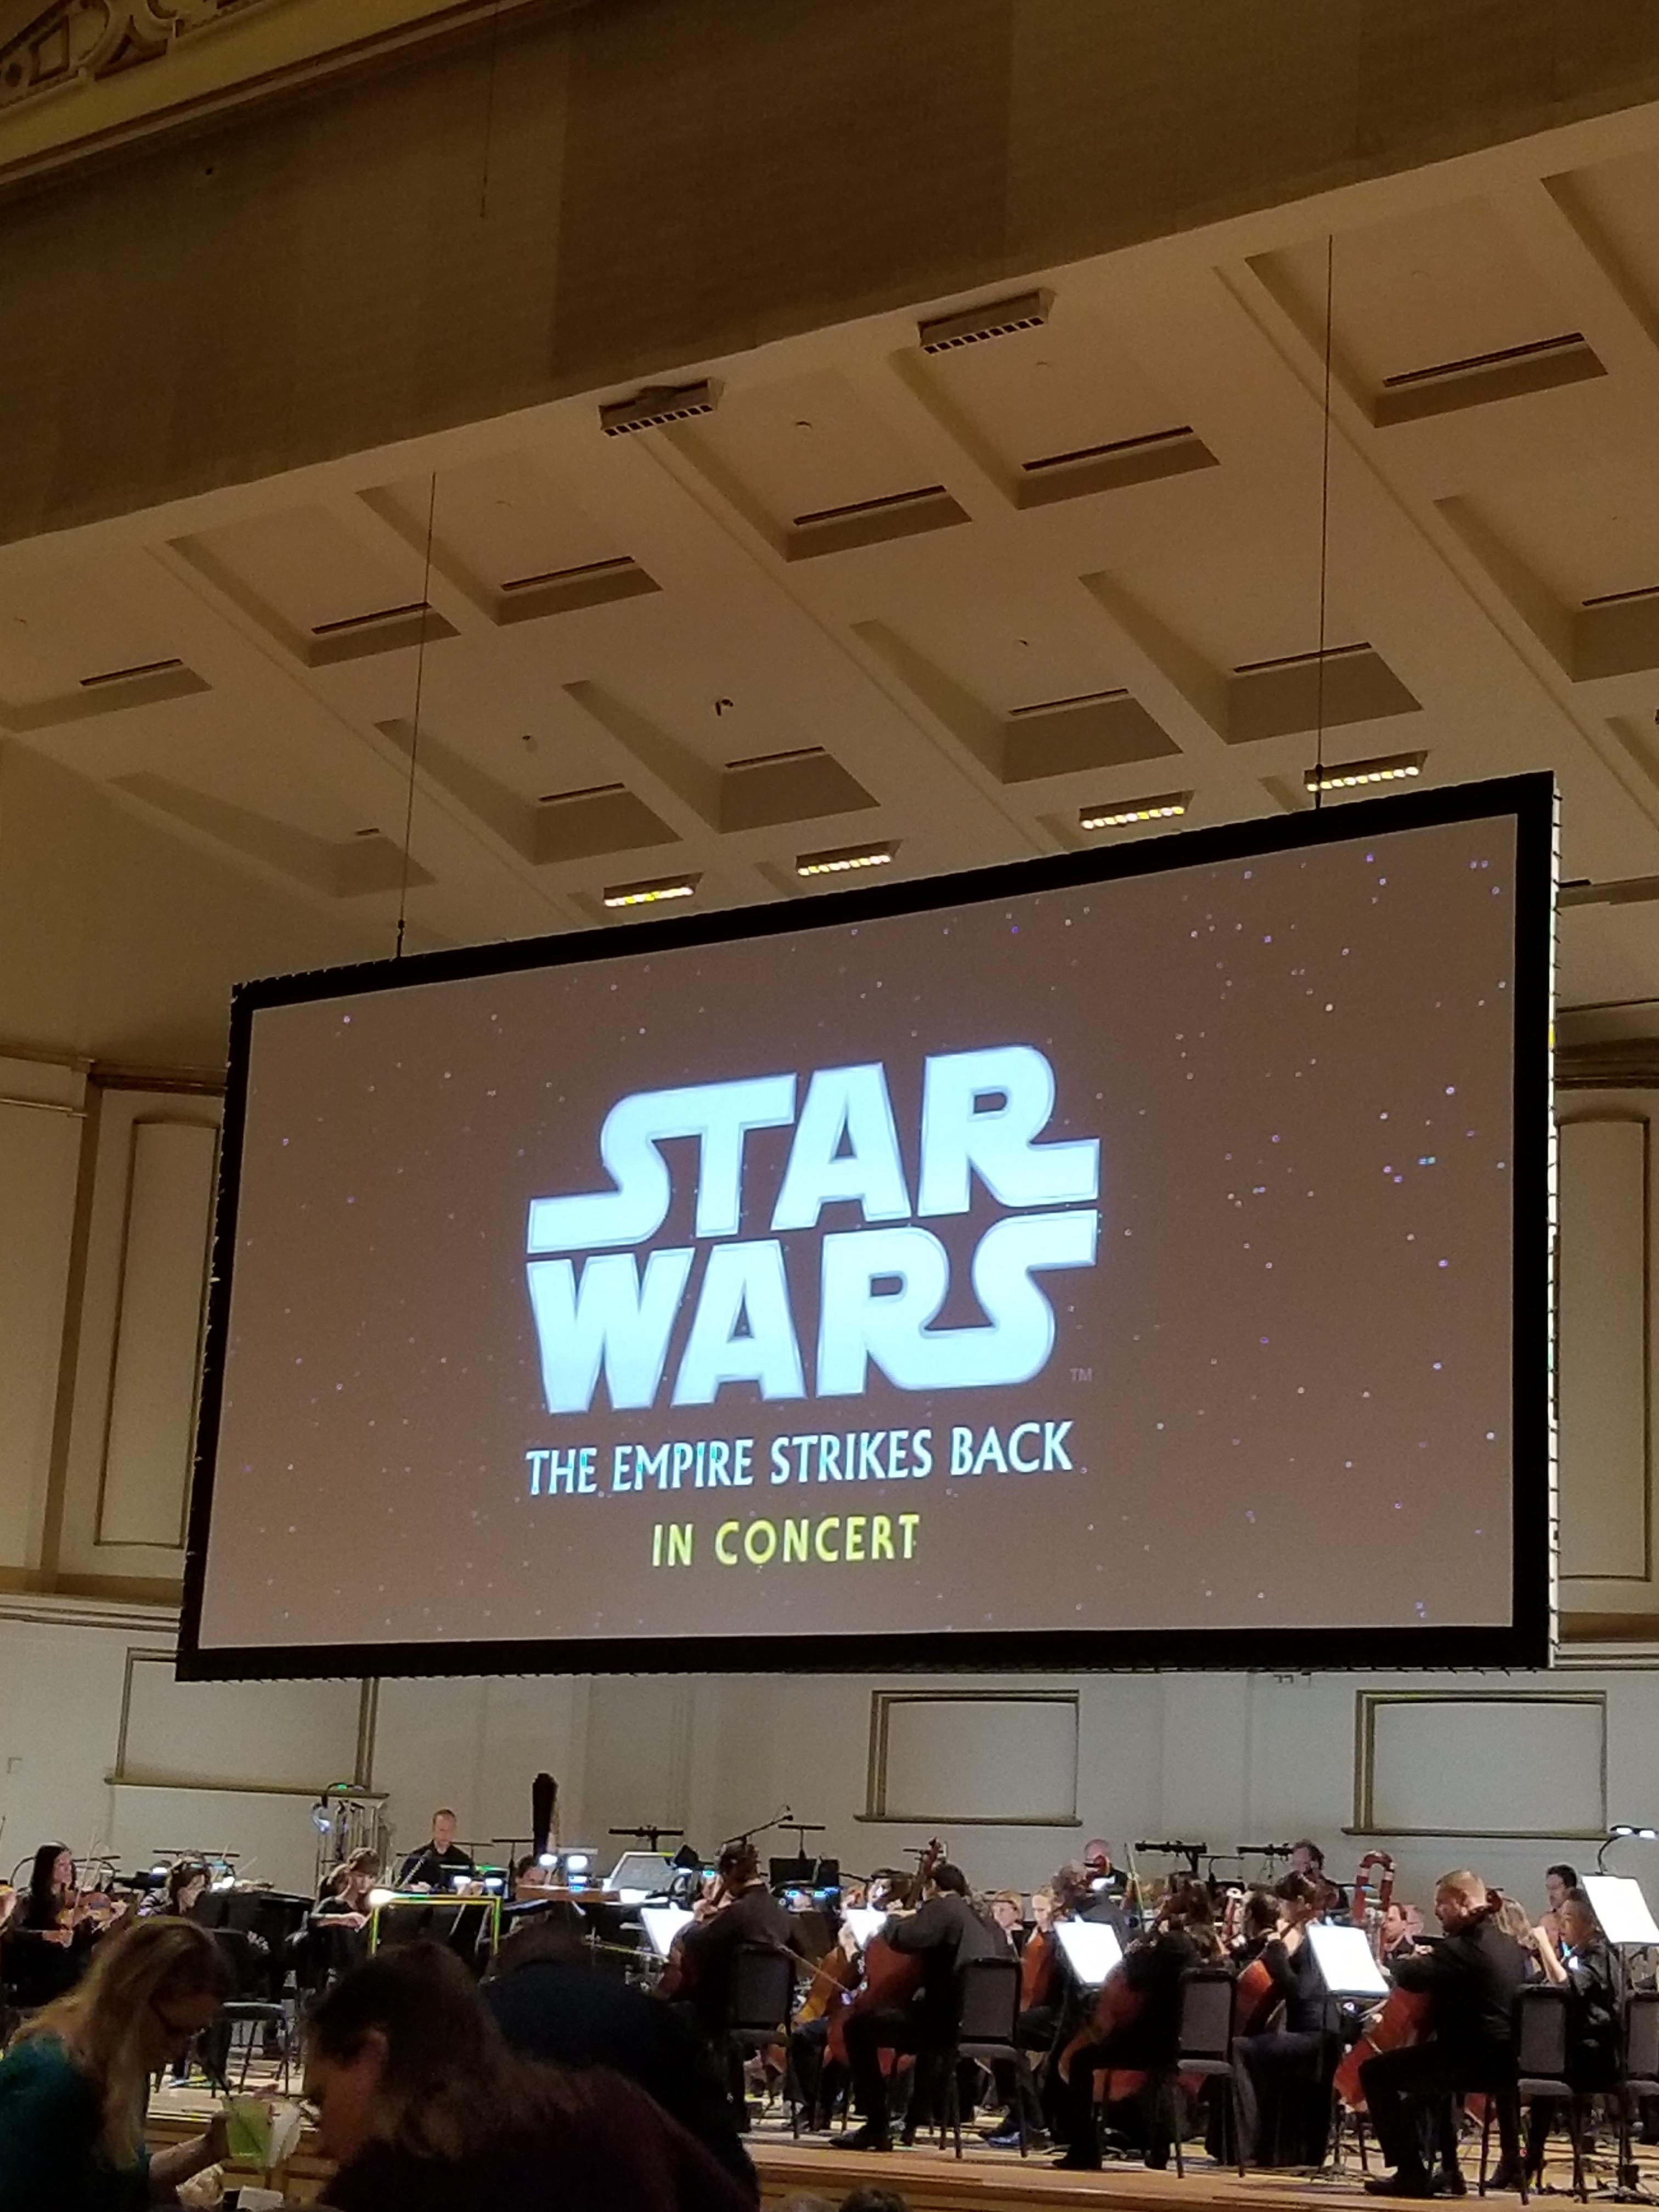 Had the chance to experience the score live tonight thanks to the St Louis Symphony